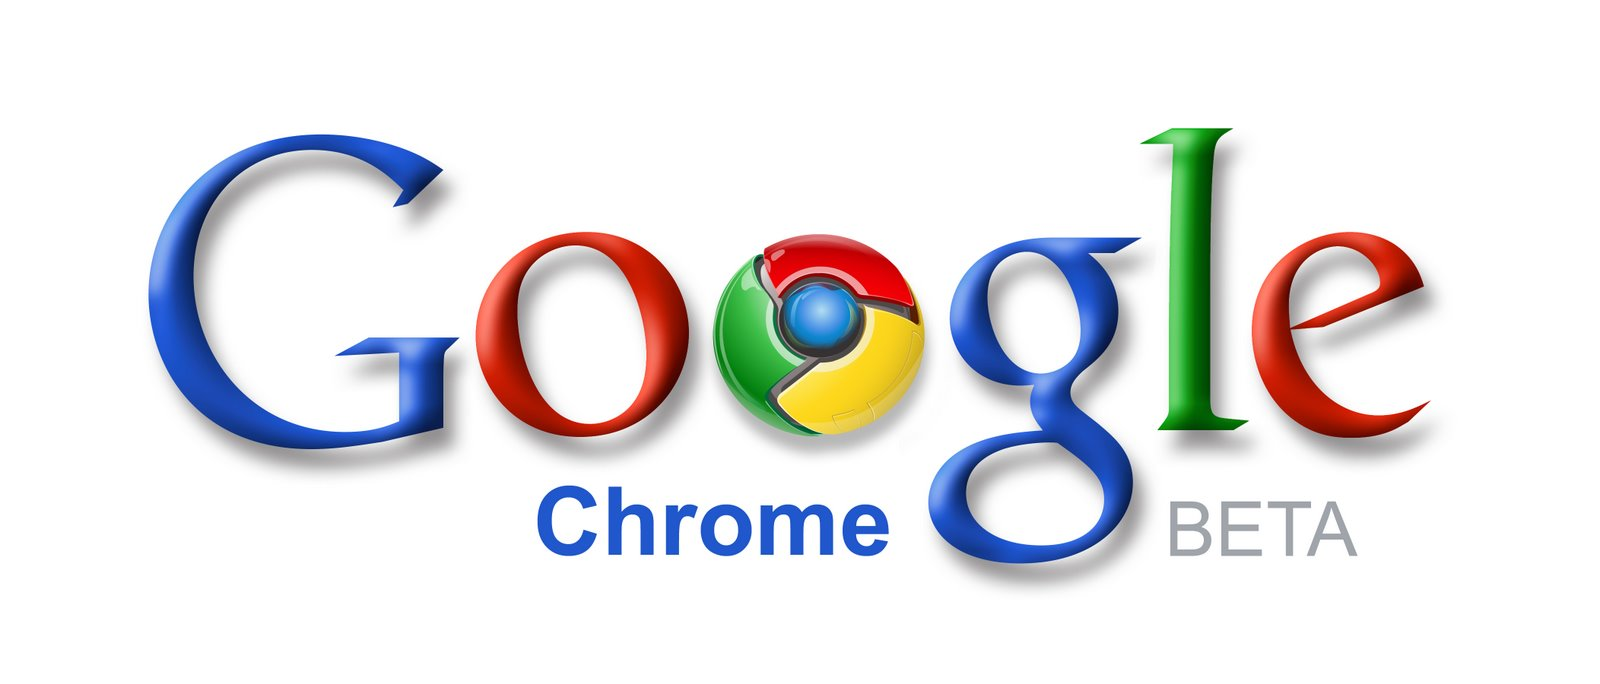 Google Chrome 17.0 BETA FREE Download | All FREE Share!!